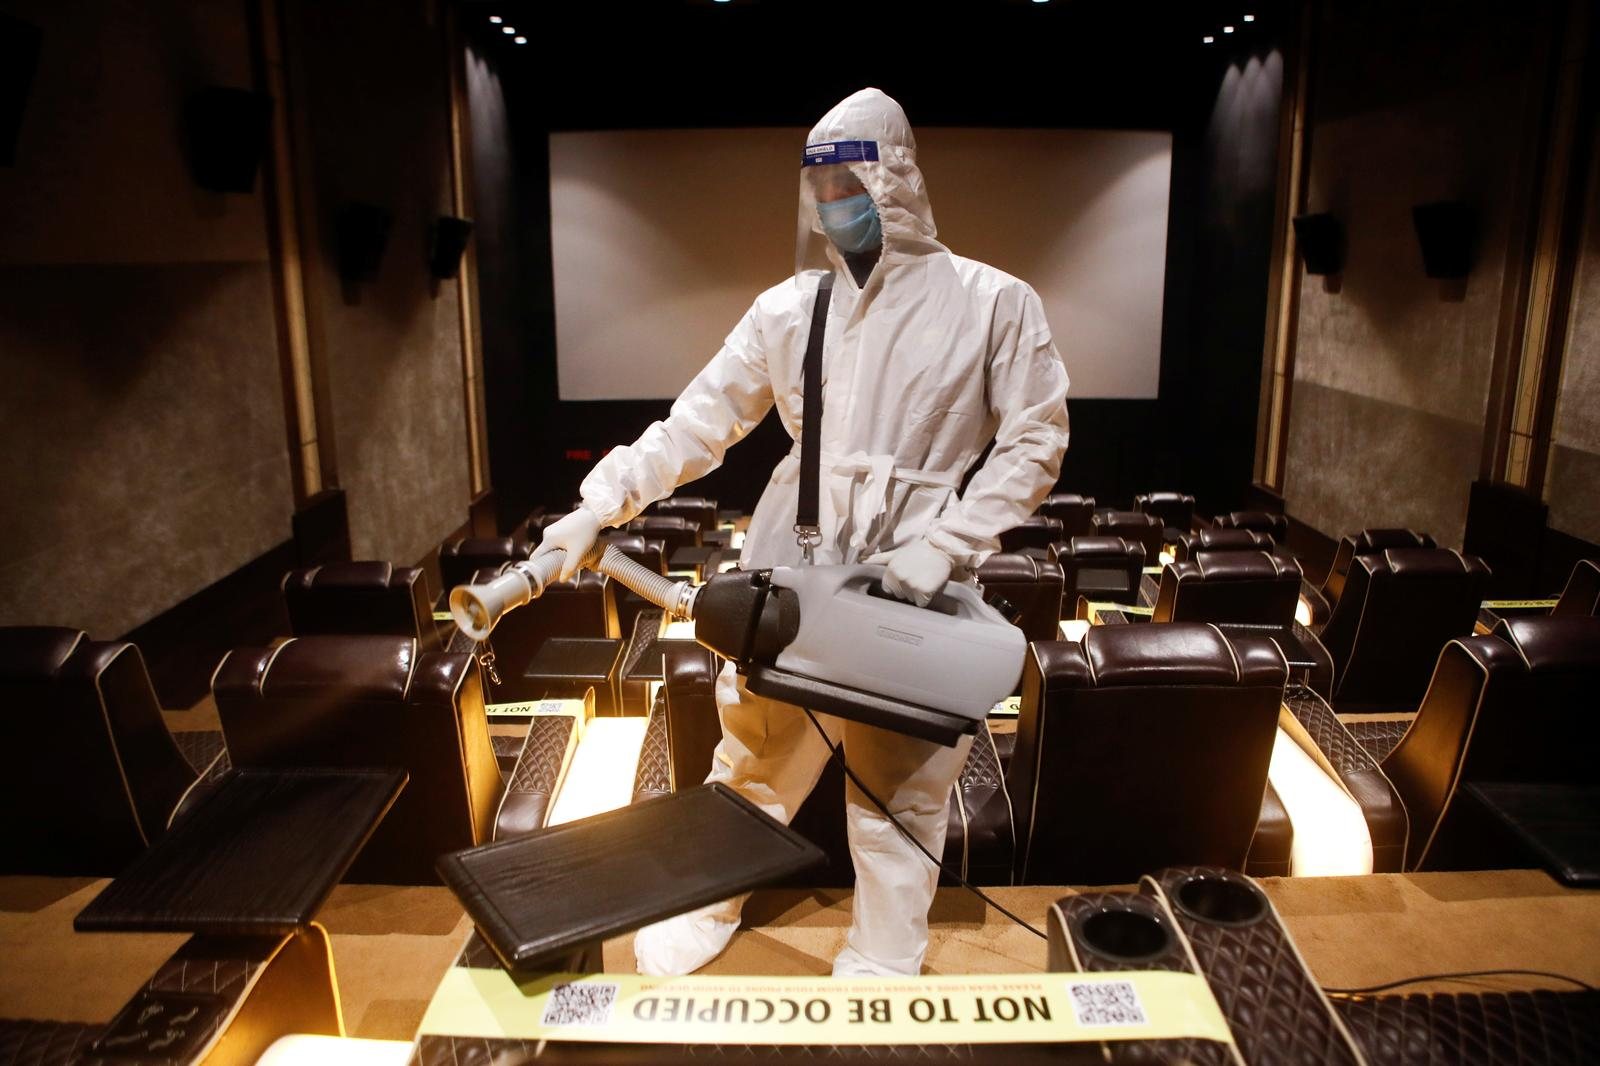 A man in personal protective equipment (PPE) sanitizes a cinema hall before a movie amid the spread of the coronavirus disease (COVID-19) in Mumbai, India November 15, 2020. Photo: Reuters